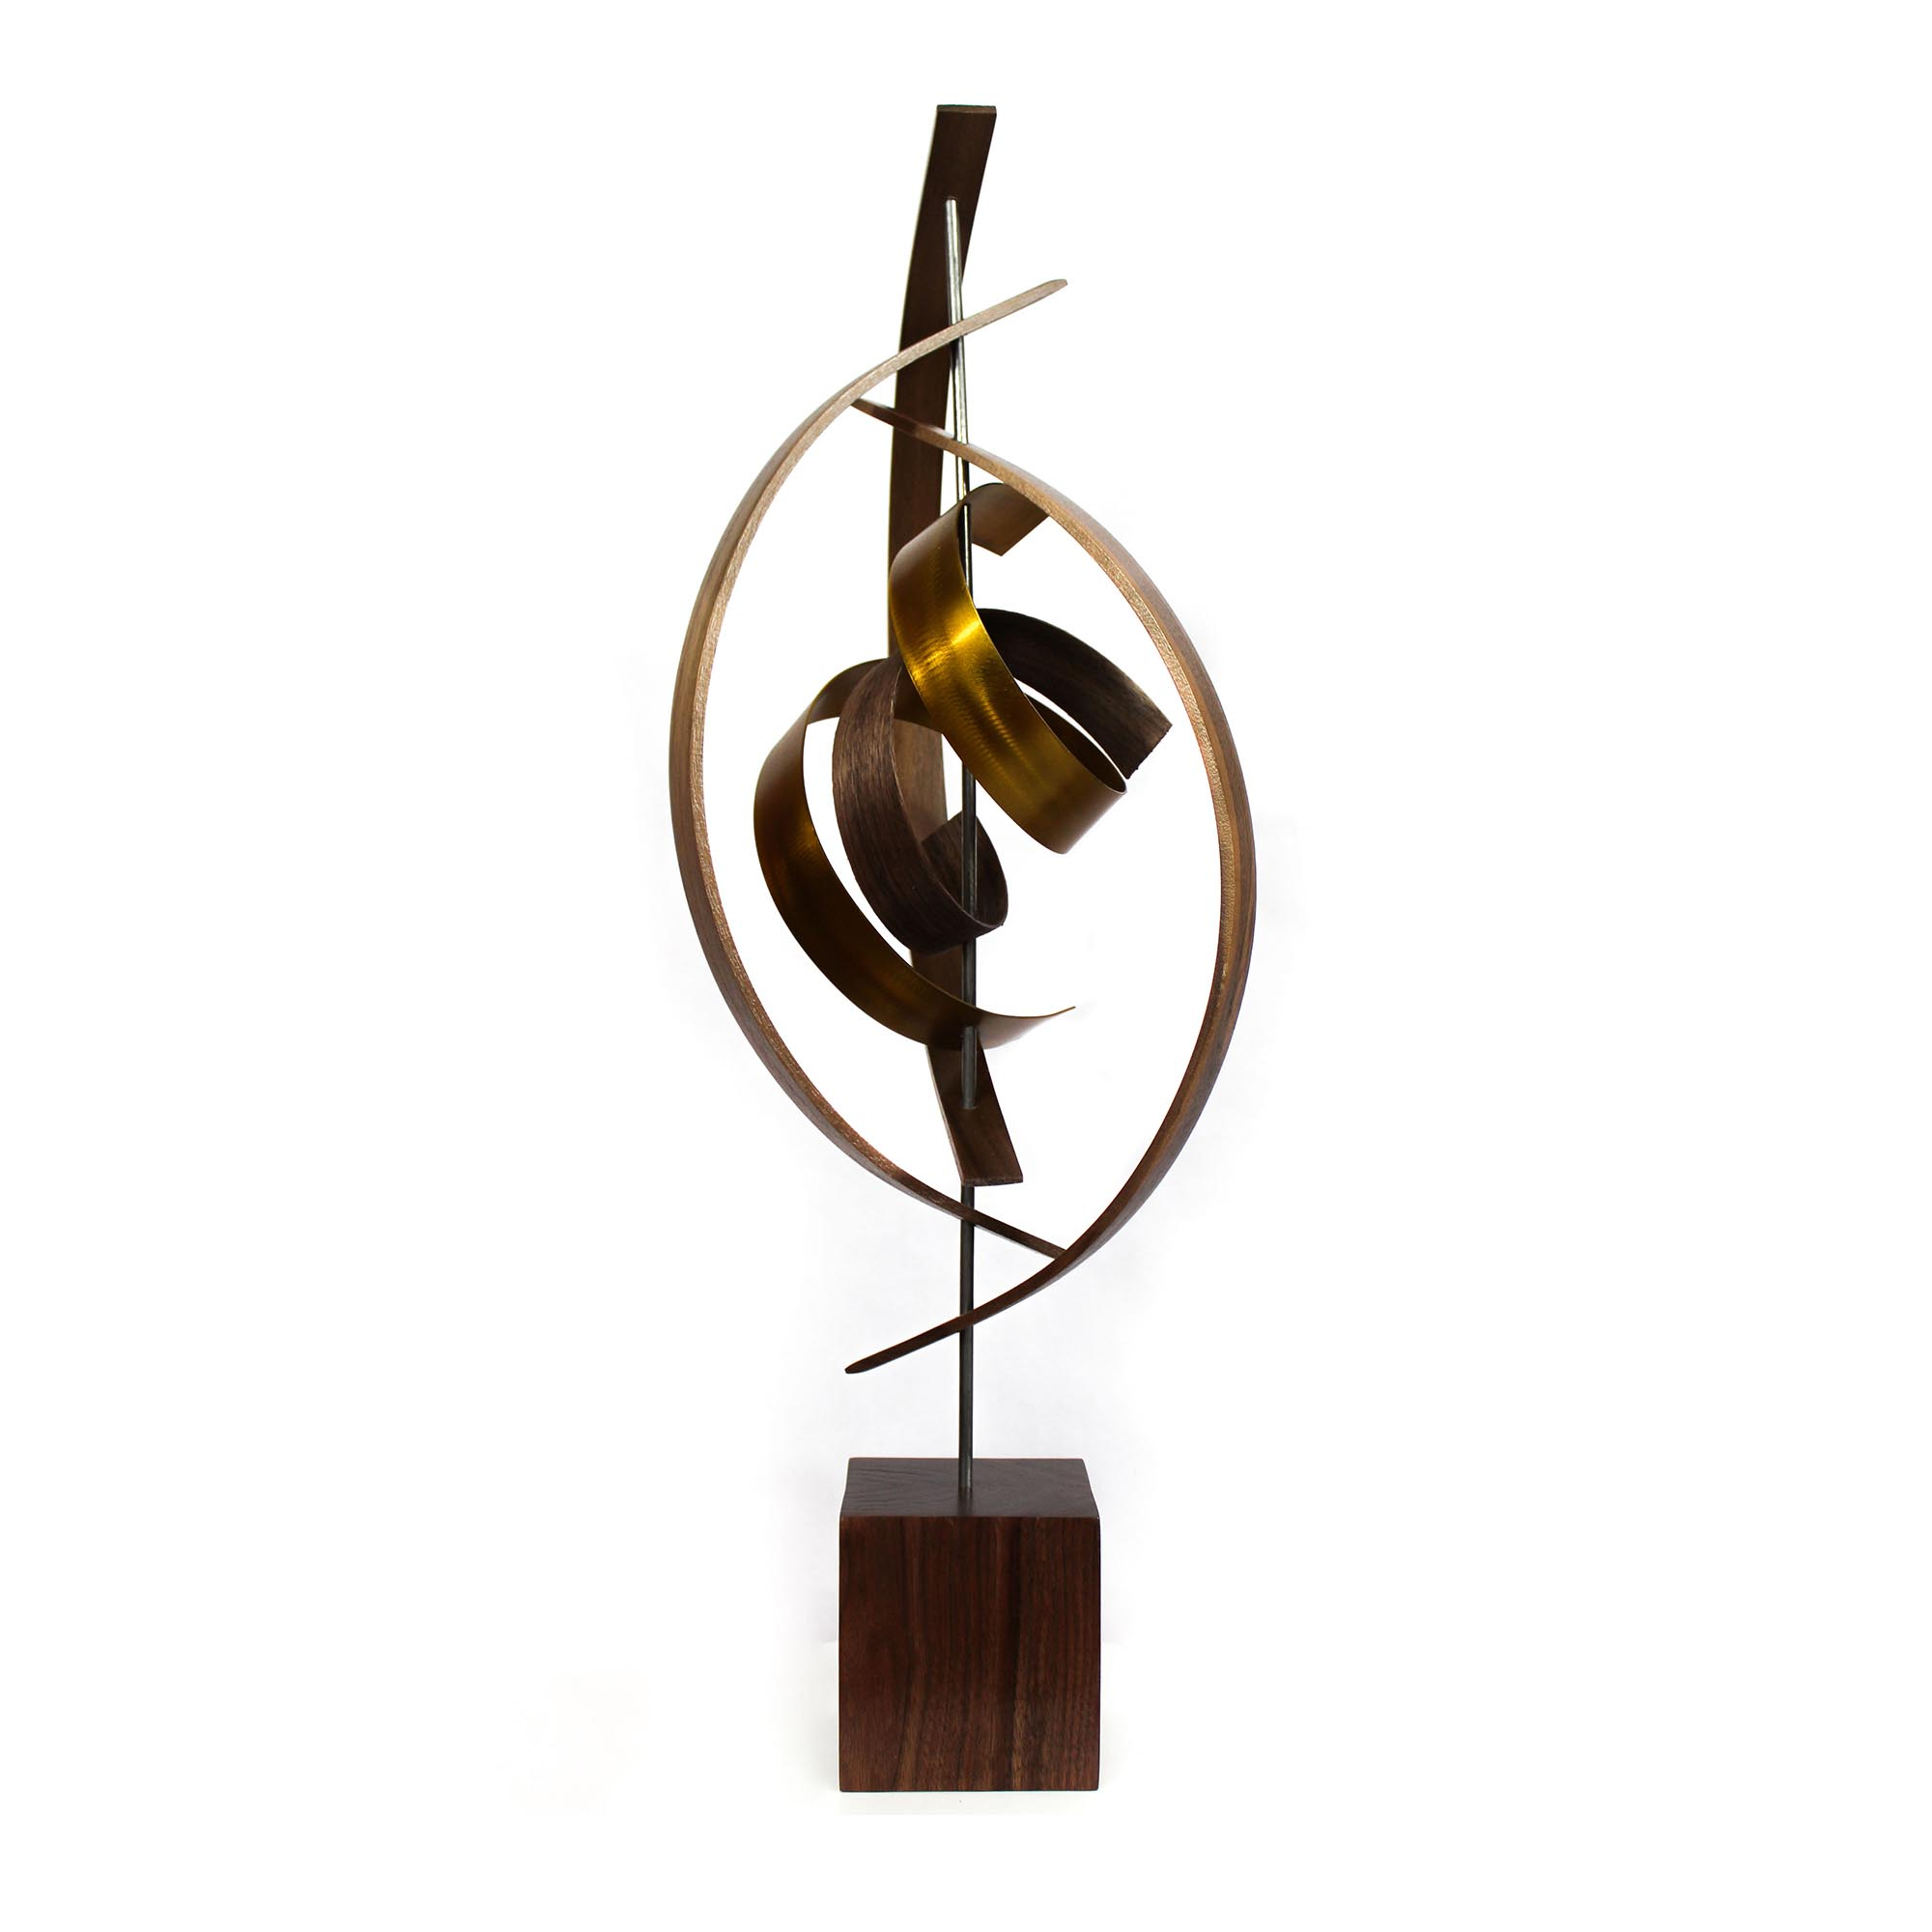 Spiral by Jackson Wright - Modern Wood Sculpture, Mid-Century Home Decor - Image 3